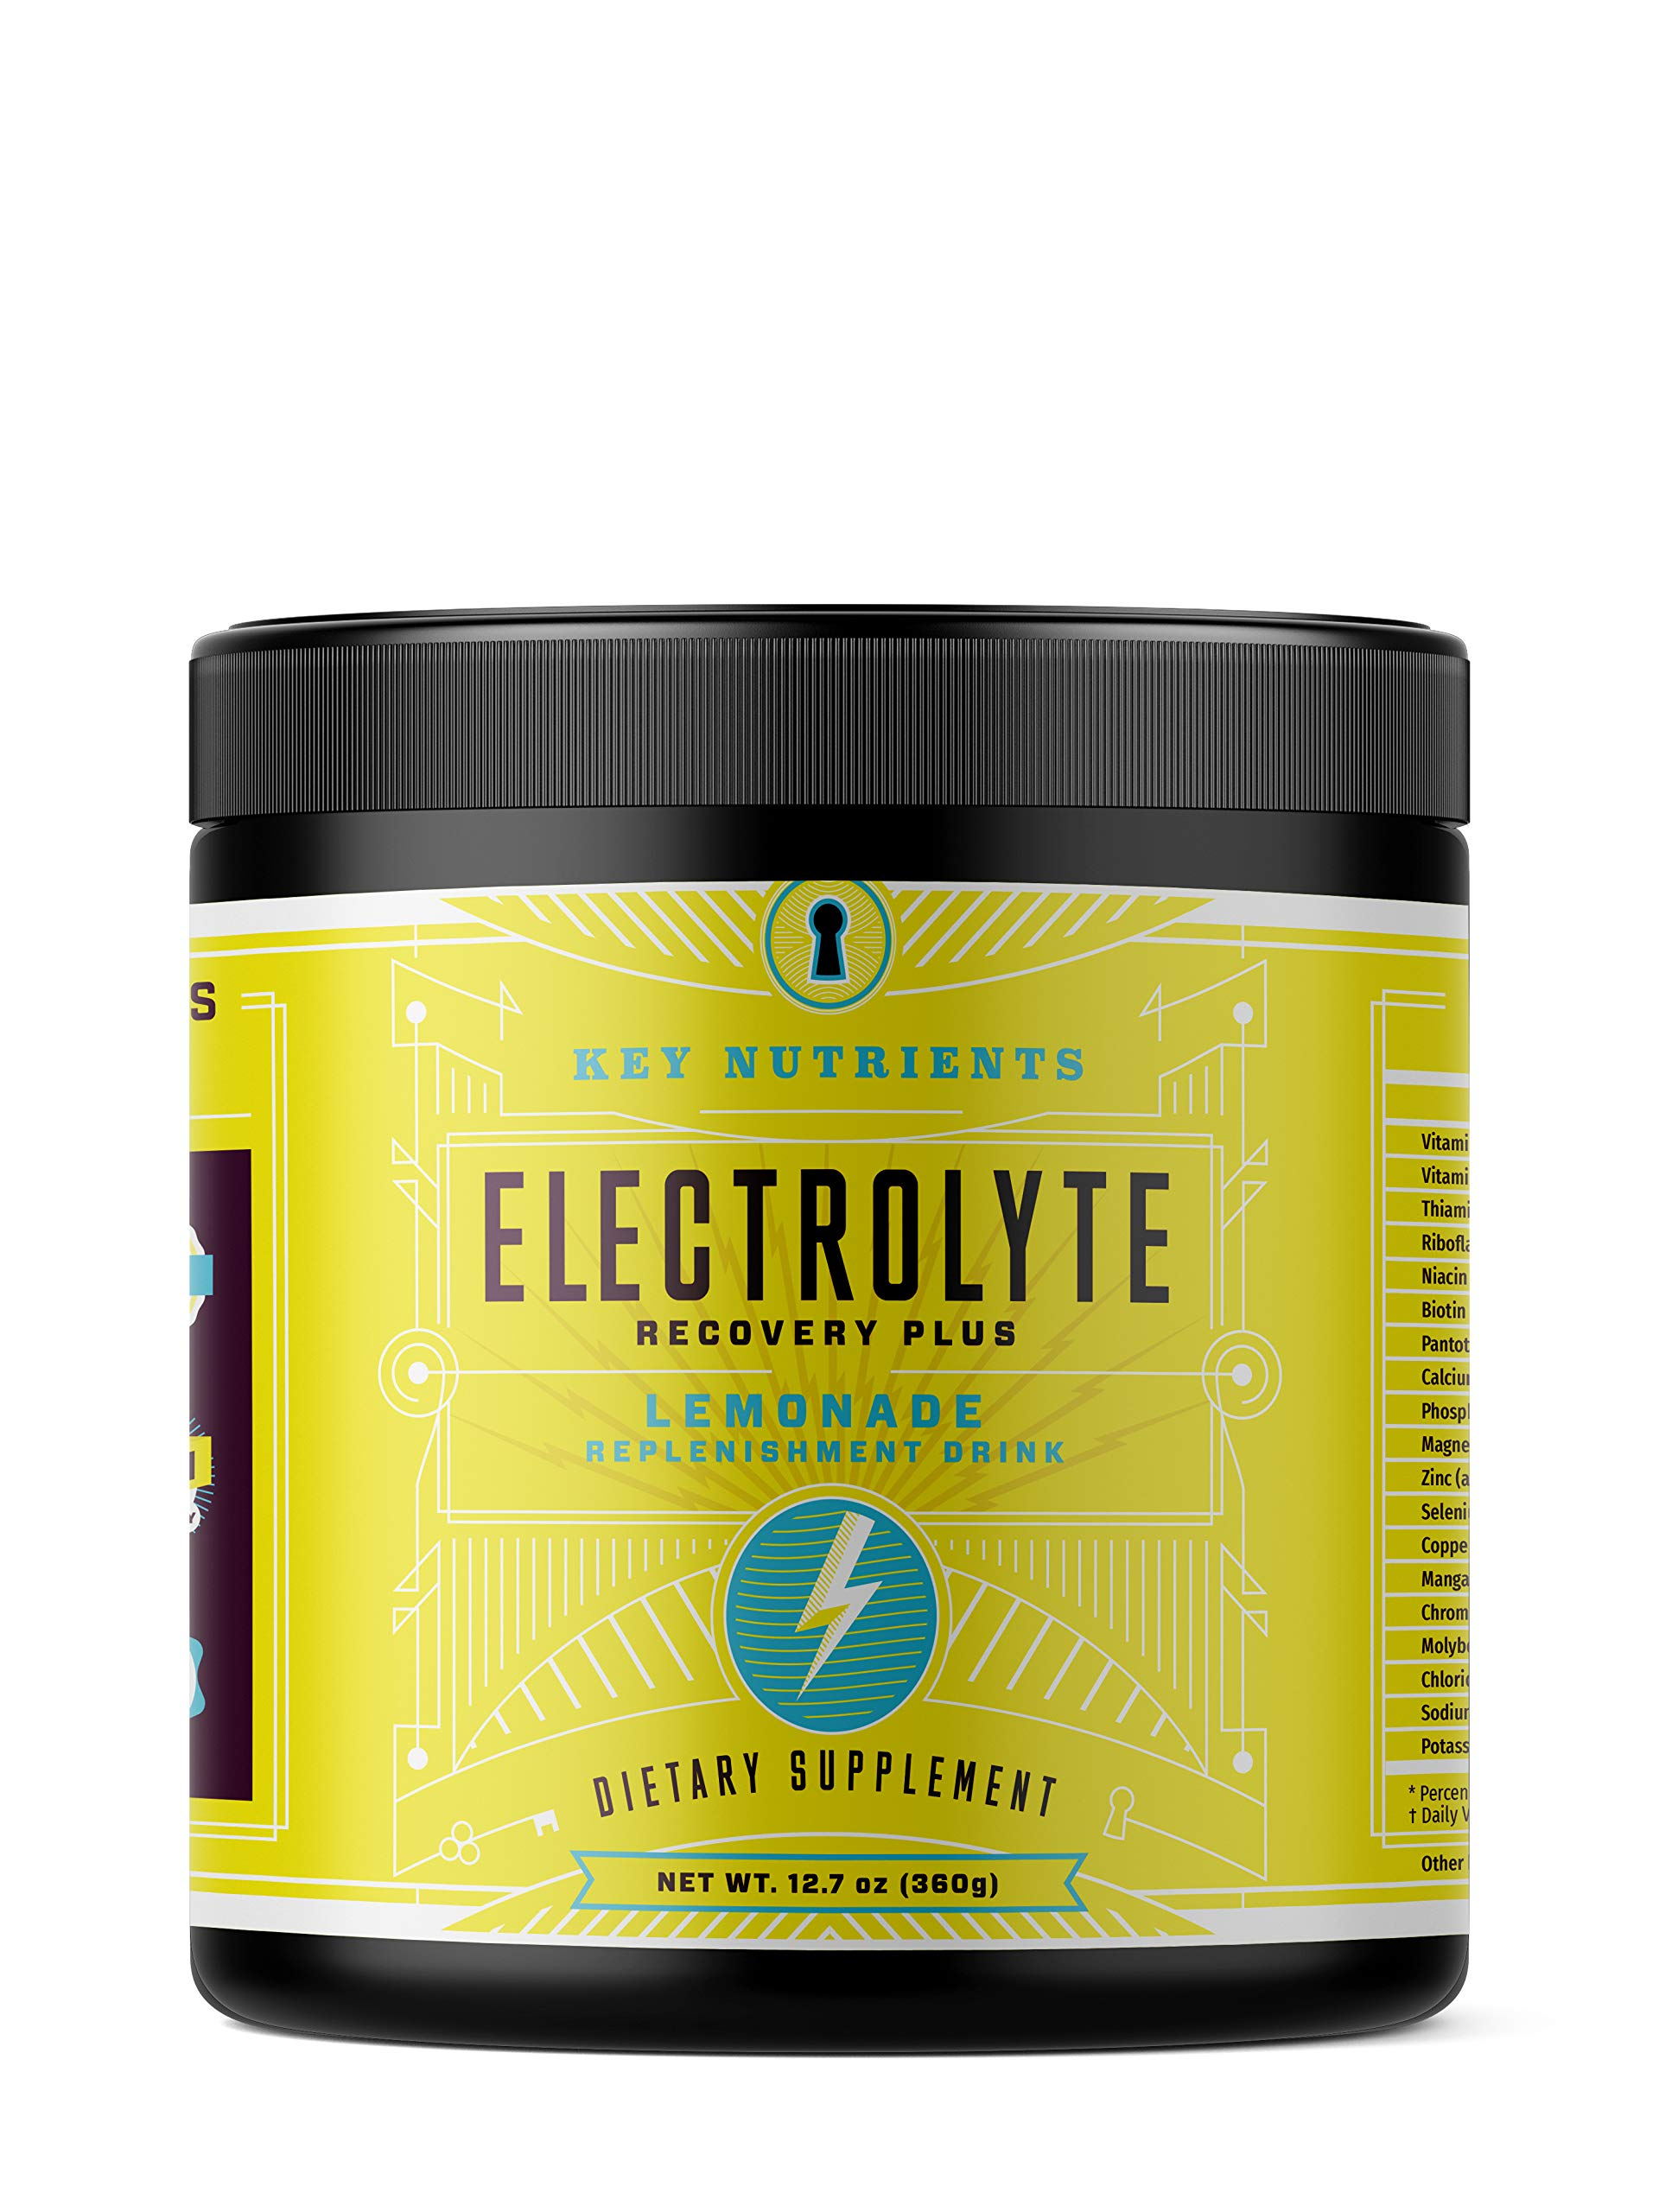 Electrolyte Powder, Lemonade Hydration Supplement: 90 Servings, Carb, Calorie & Sugar Free, Delicious Keto Replenishment Drink Mix. 6 Key Electrolytes - Magnesium, Potassium, Calcium & More. by KEY NUTRIENTS